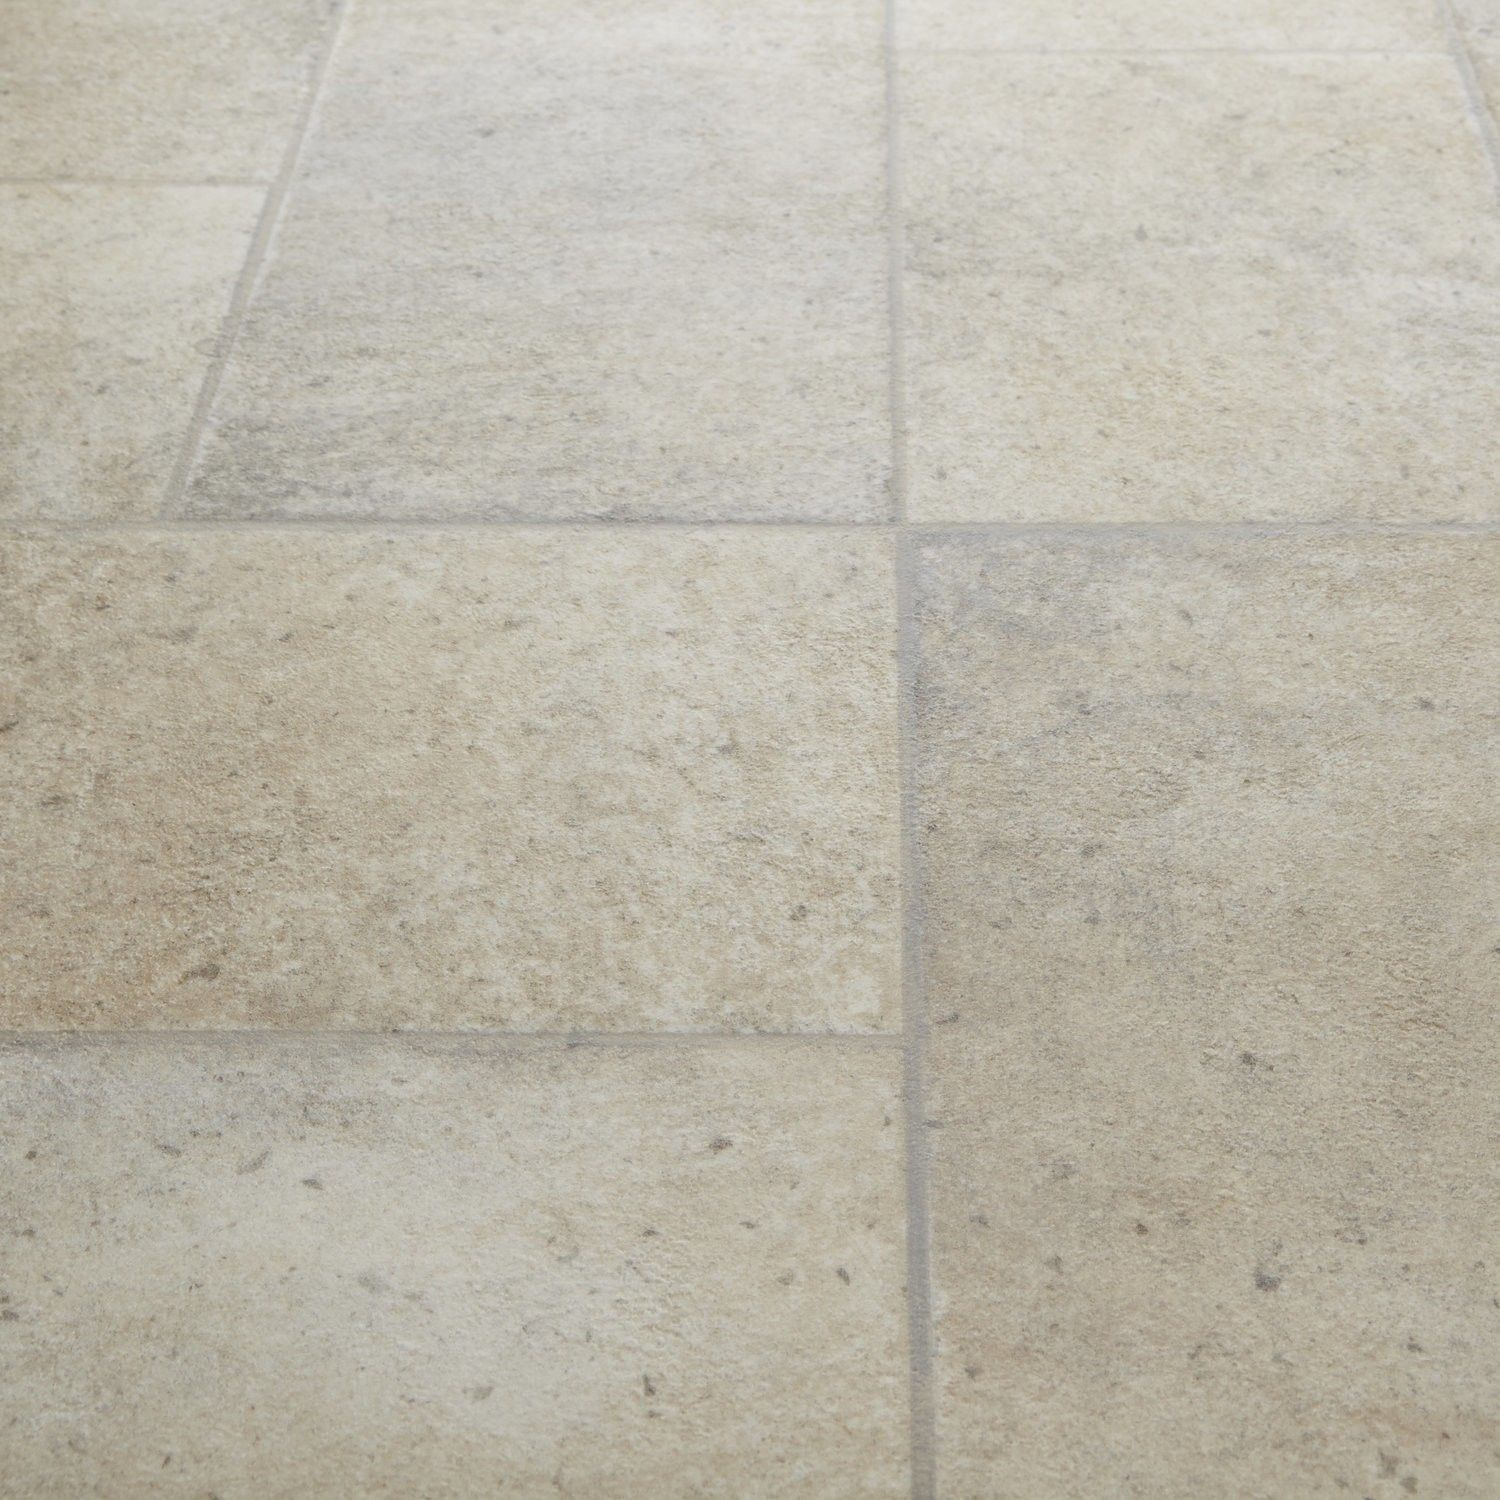 indonesian products natural tile stone black squares floor flooring pebble